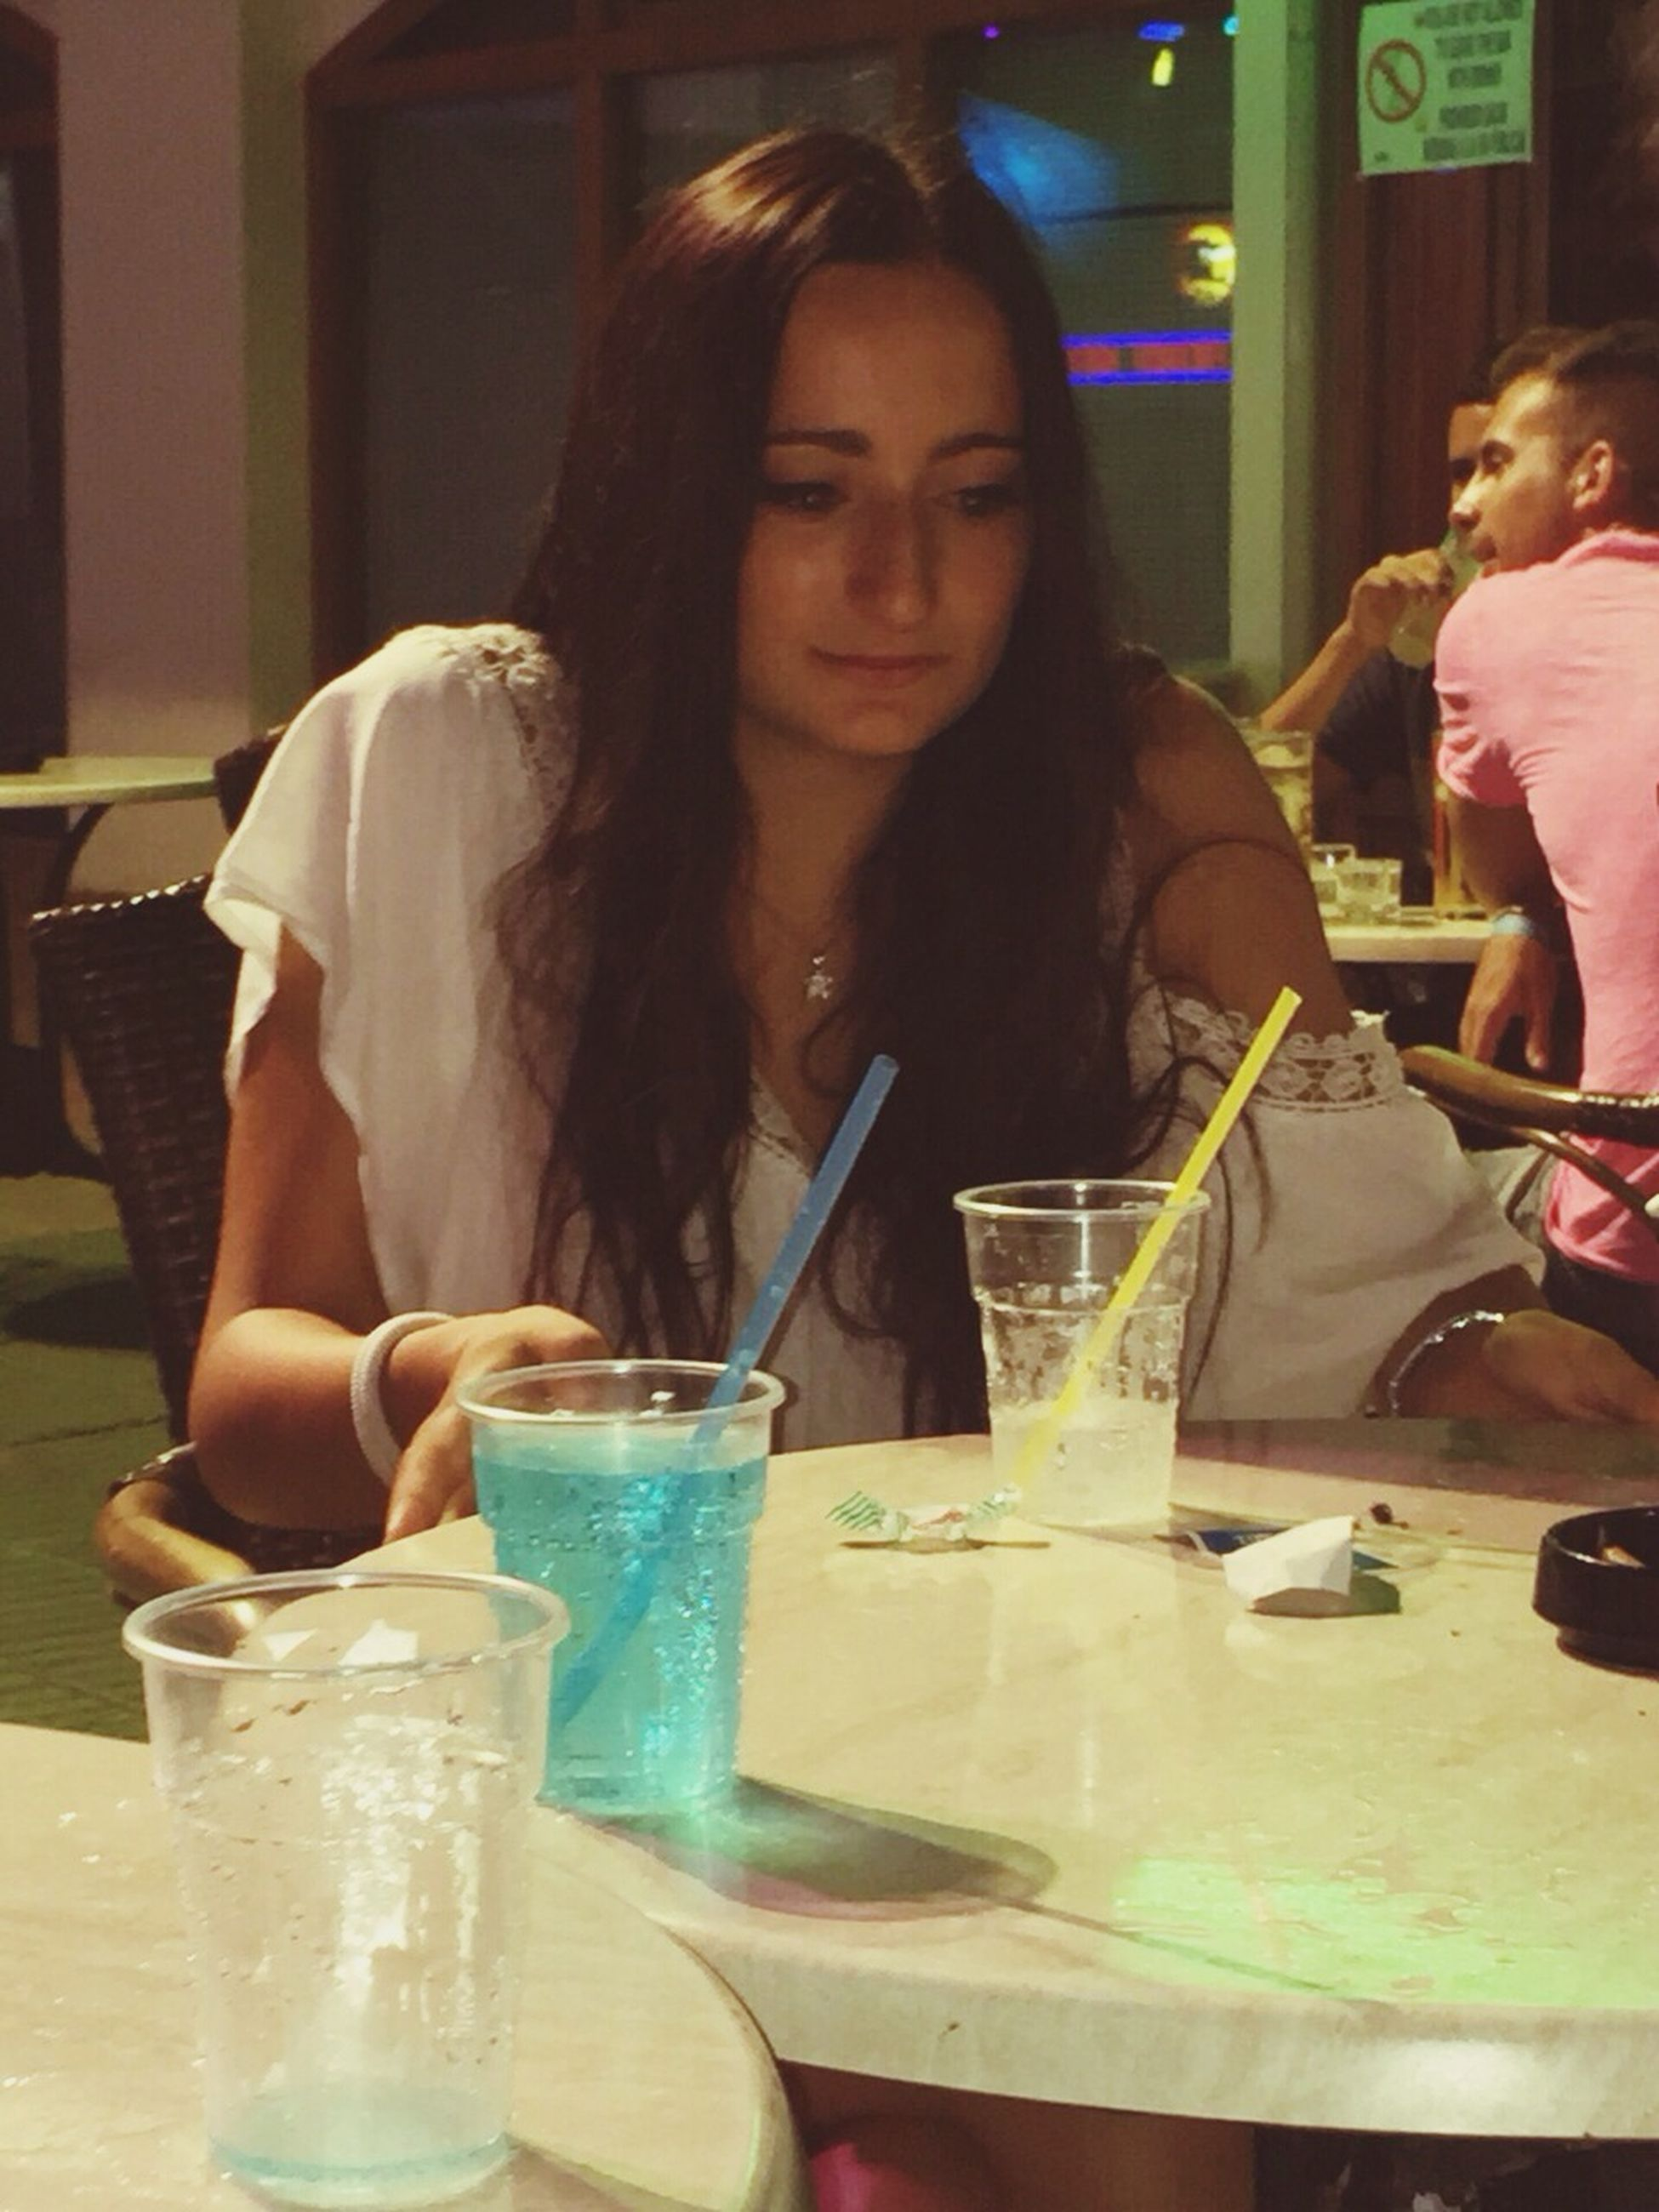 person, lifestyles, young adult, indoors, casual clothing, food and drink, leisure activity, drink, young women, sitting, front view, holding, portrait, restaurant, waist up, looking at camera, refreshment, headshot